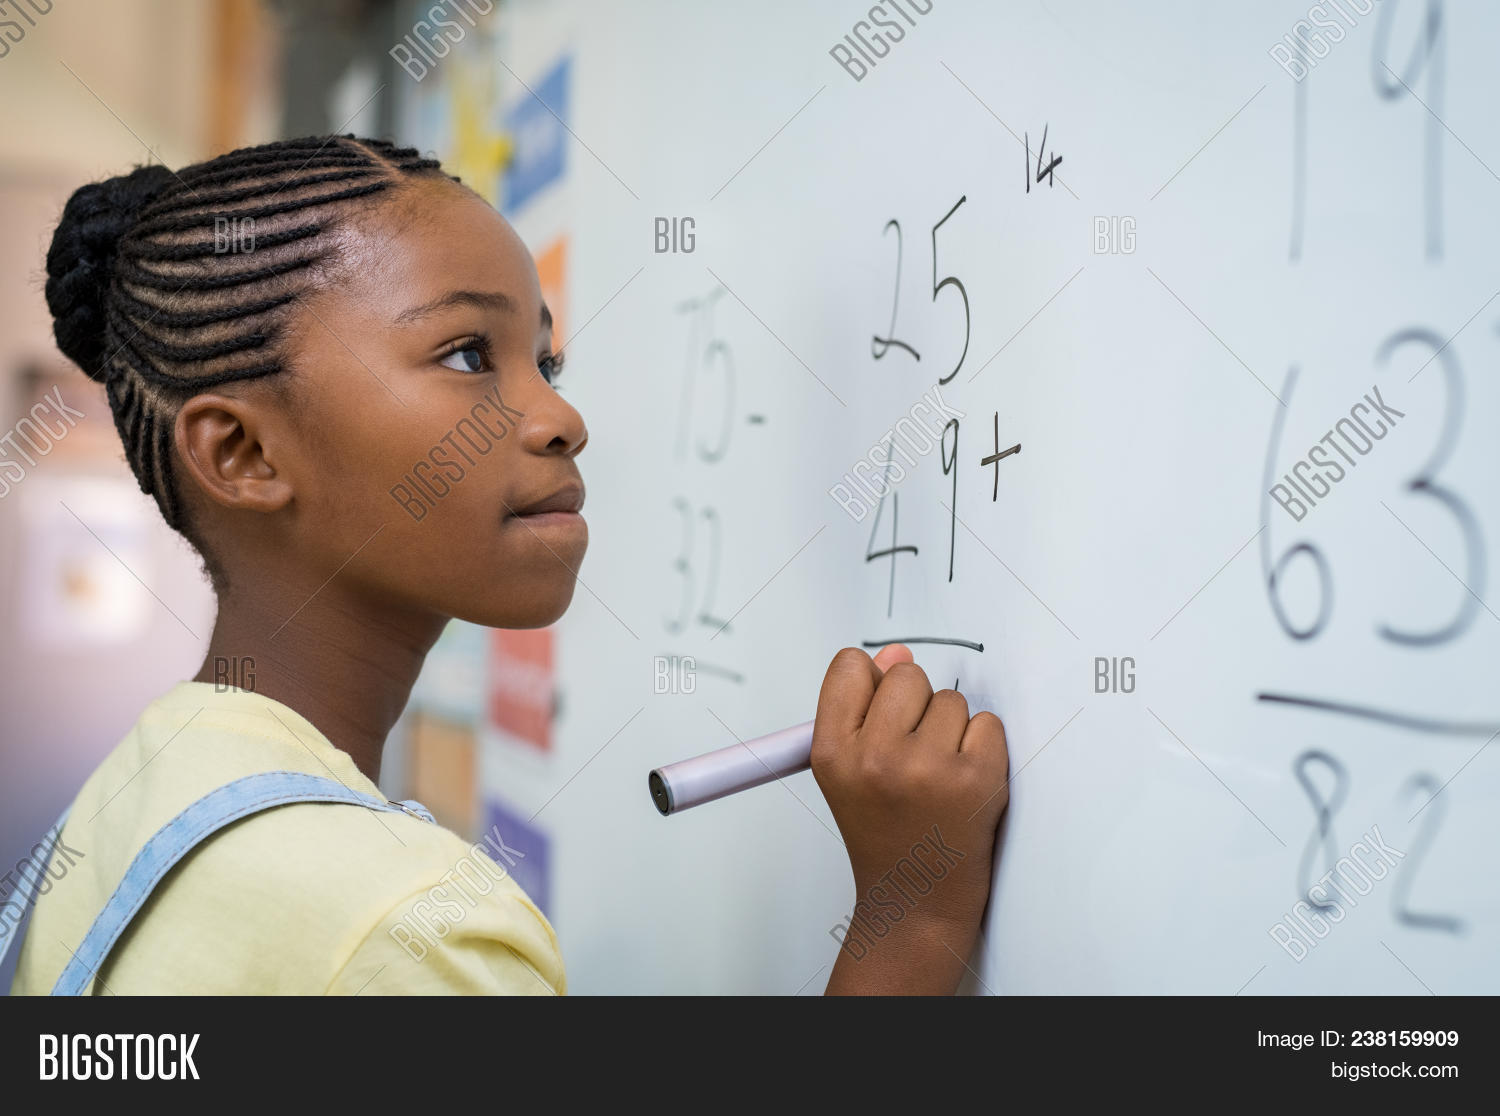 addition,african,american,arithmetic,beautiful,black,board,child,childhood,class,classroom,education,elementary,girl,kid,knowledge,learn,lesson,math,mathematics,number,people,person,primary,problem,pupil,scholar,school,school girl,smart,solution,solving,standing,student,study,sum,thinking,thoughtful,white board,whiteboard,writing,young